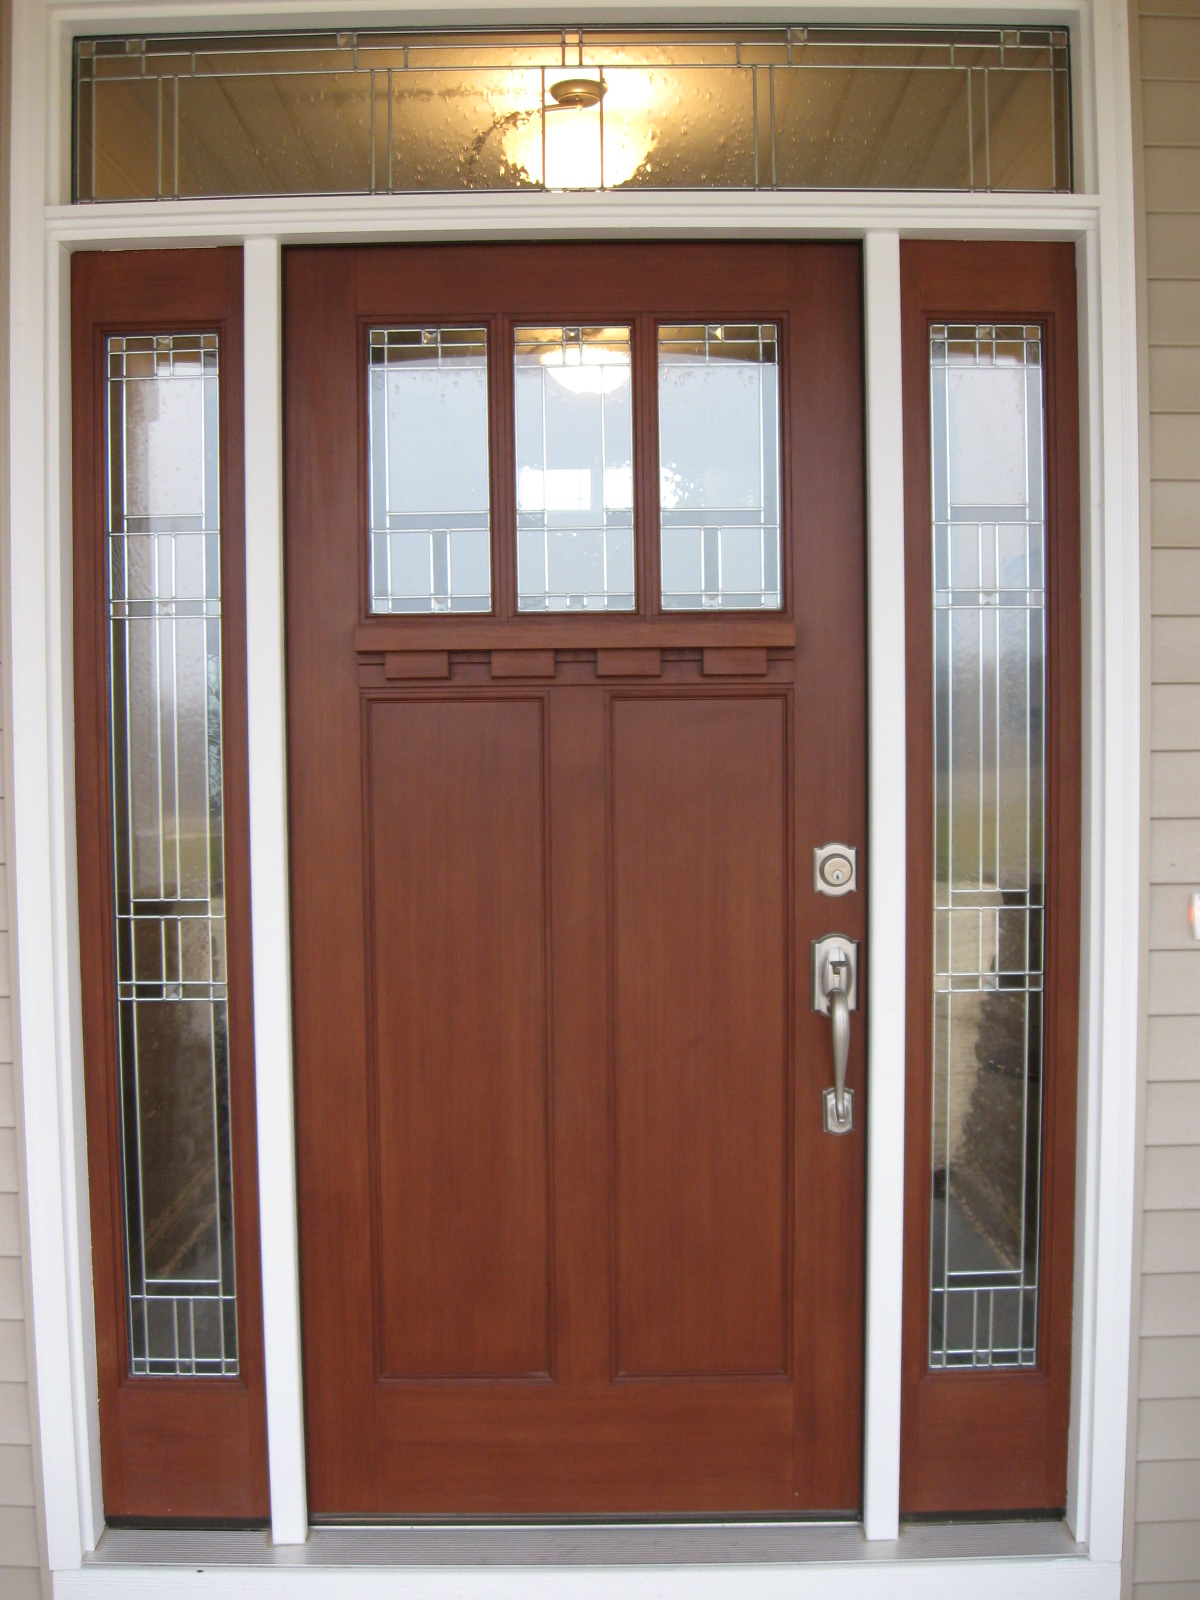 How To Install A Prehung Door Properly In Your New Home